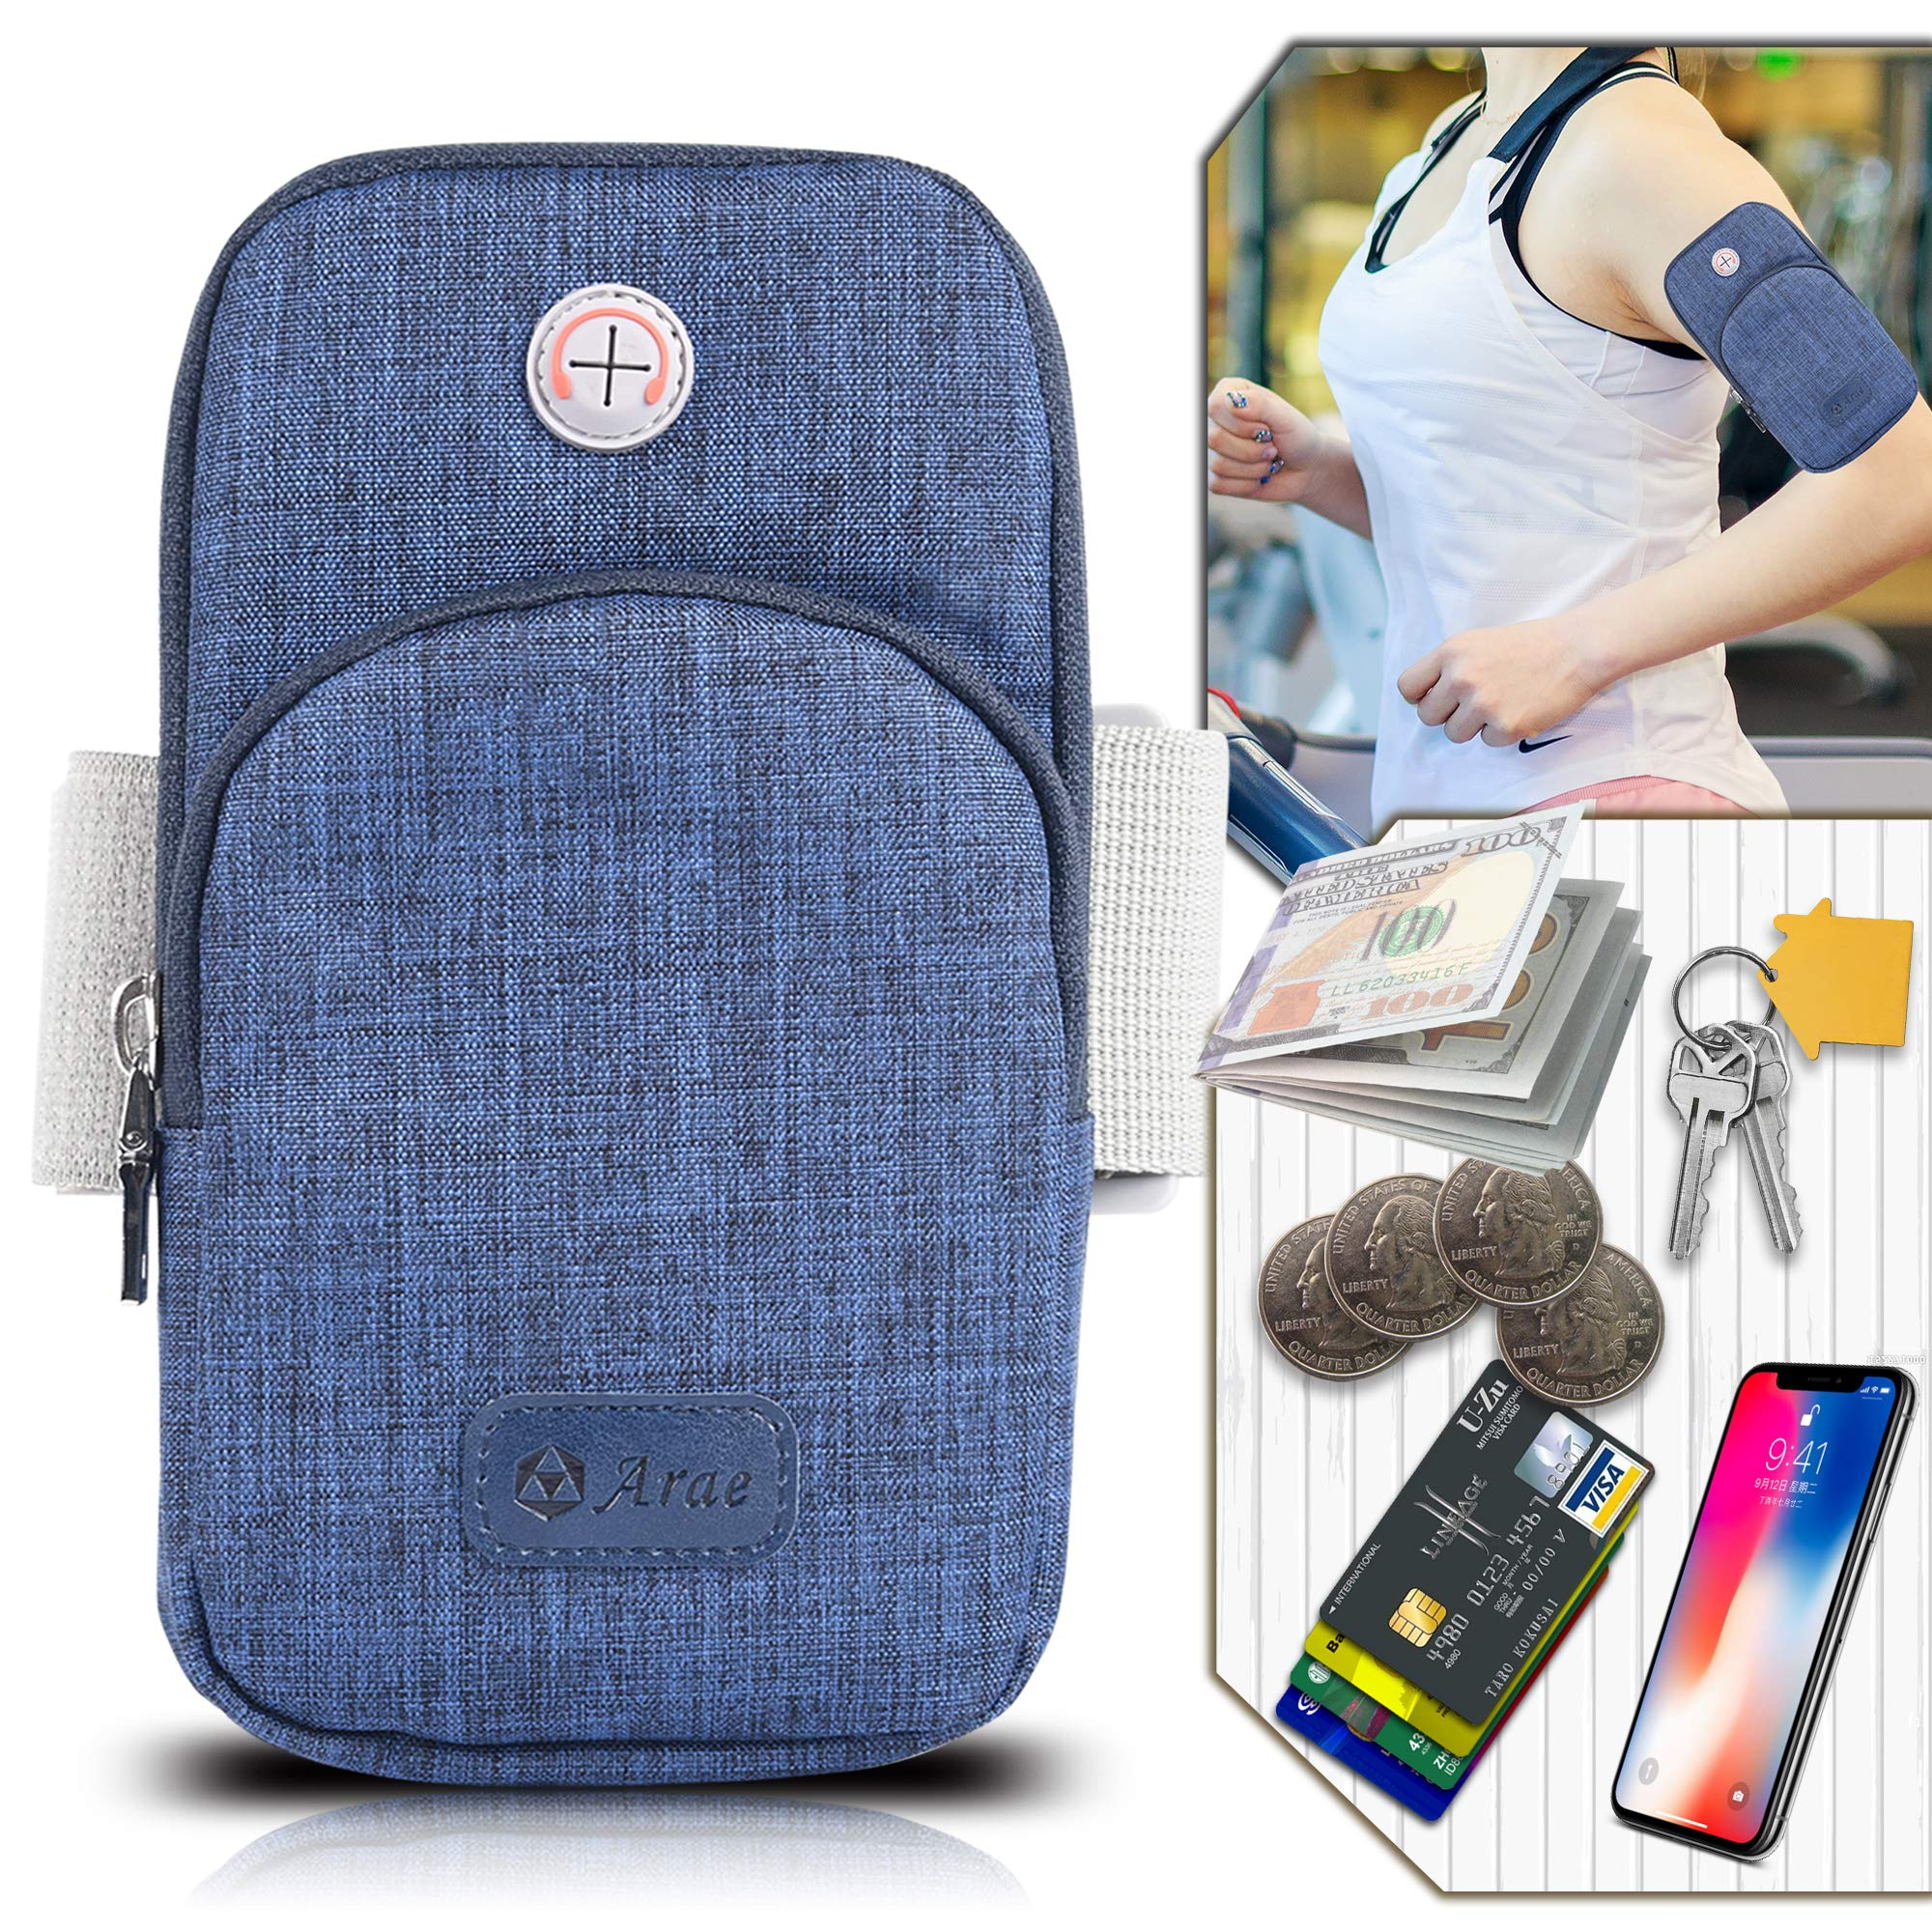 Arae Sports Armband, Running Gym Universal Smartphone Arm Bag with Earphone Hole Multifunctional Pockets for iPhone, Samsung, LG, Moto, Google and All Smartphone - Blue